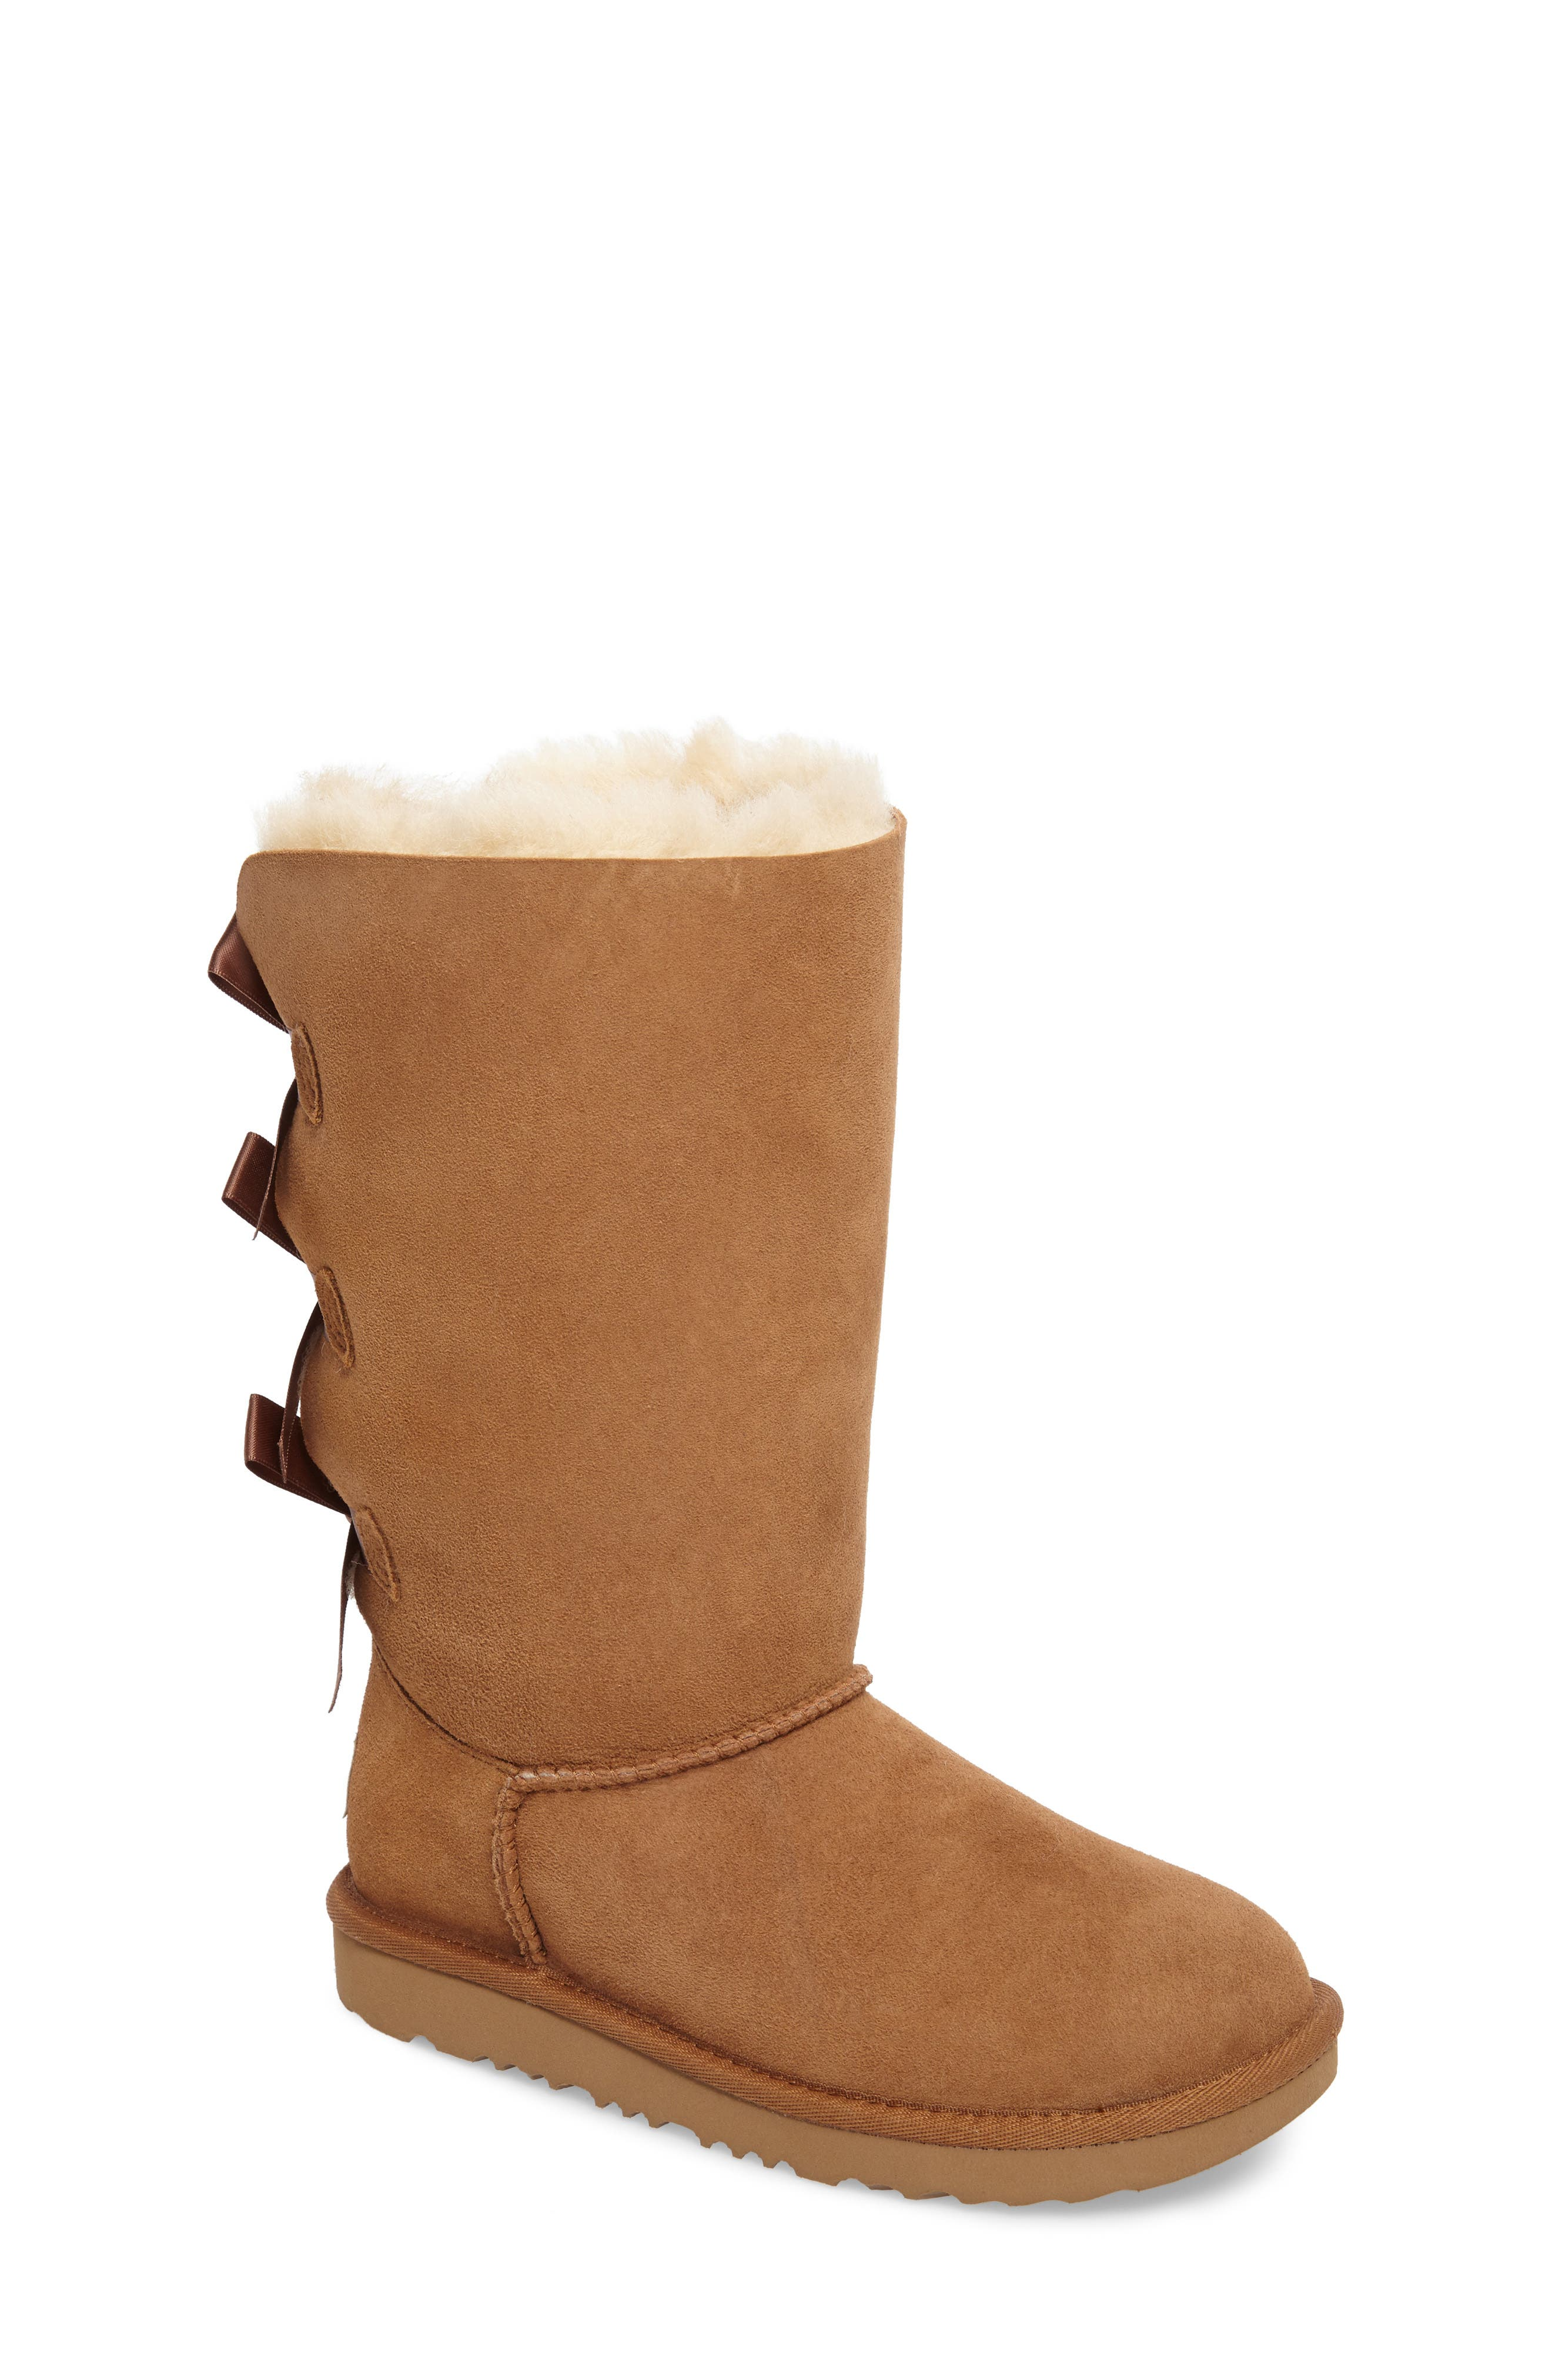 Bailey Bow Tall II Water Resistant Genuine Shearling Boot,                         Main,                         color, Chestnut Brown